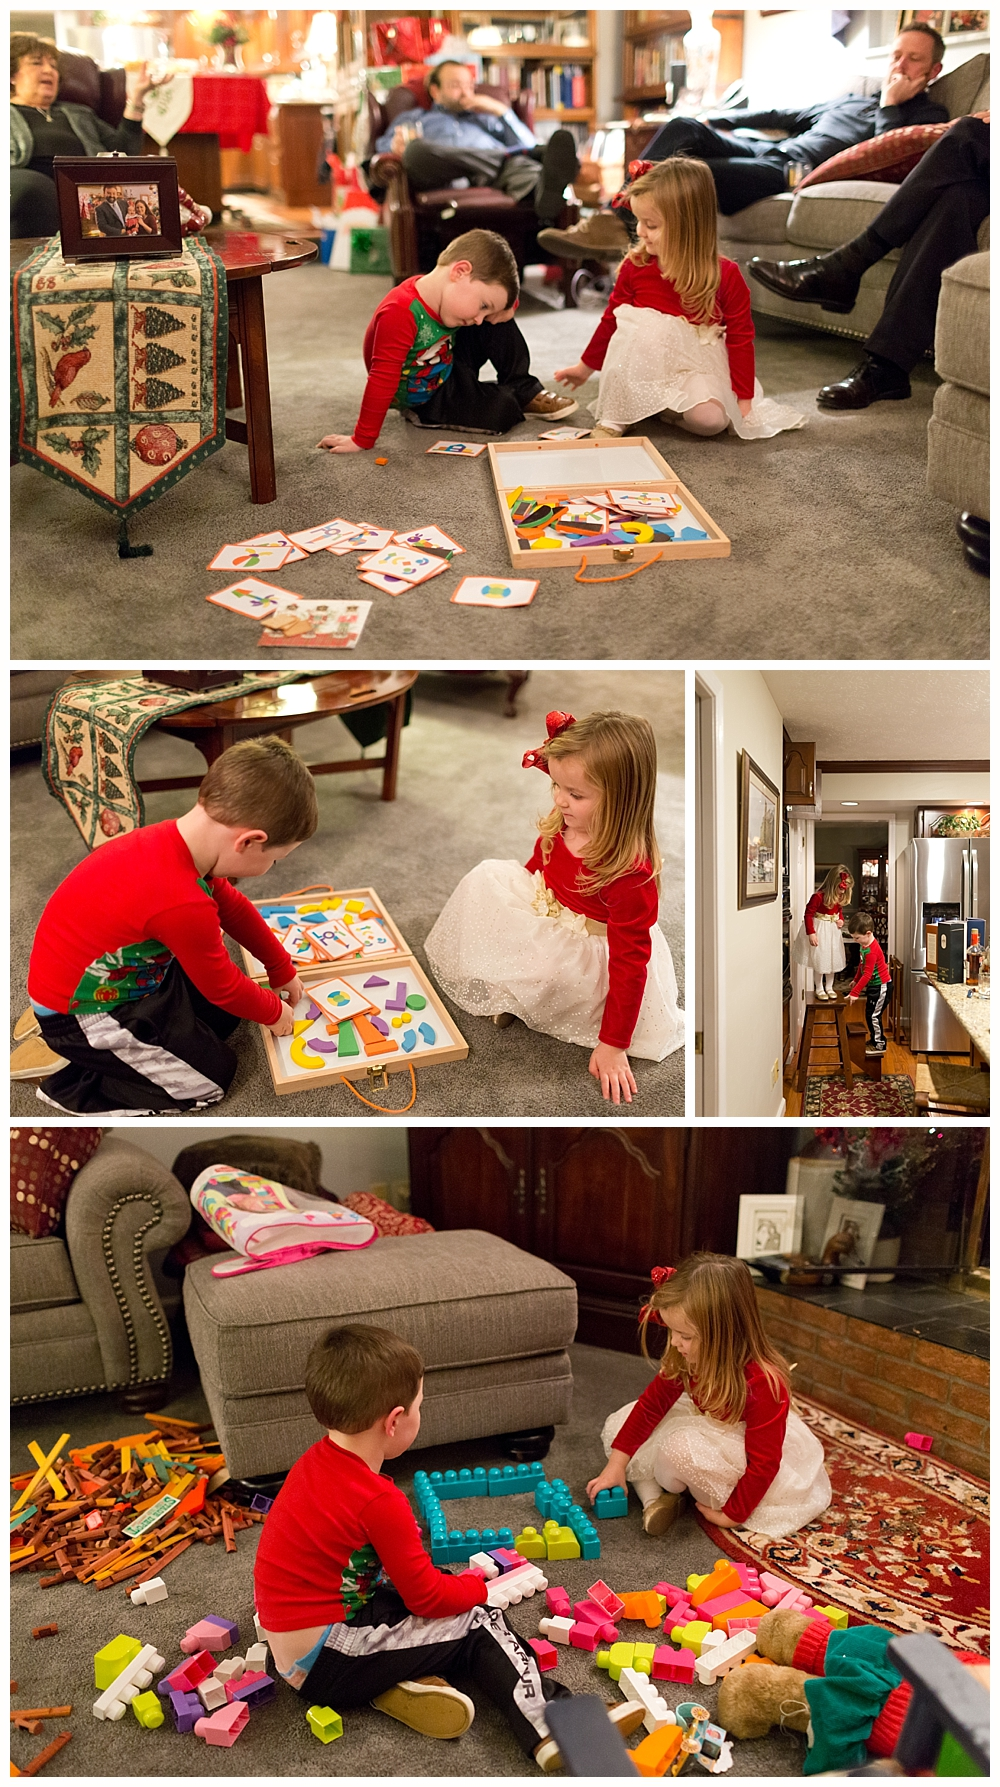 three-year-old kids playing together on Christmas Eve